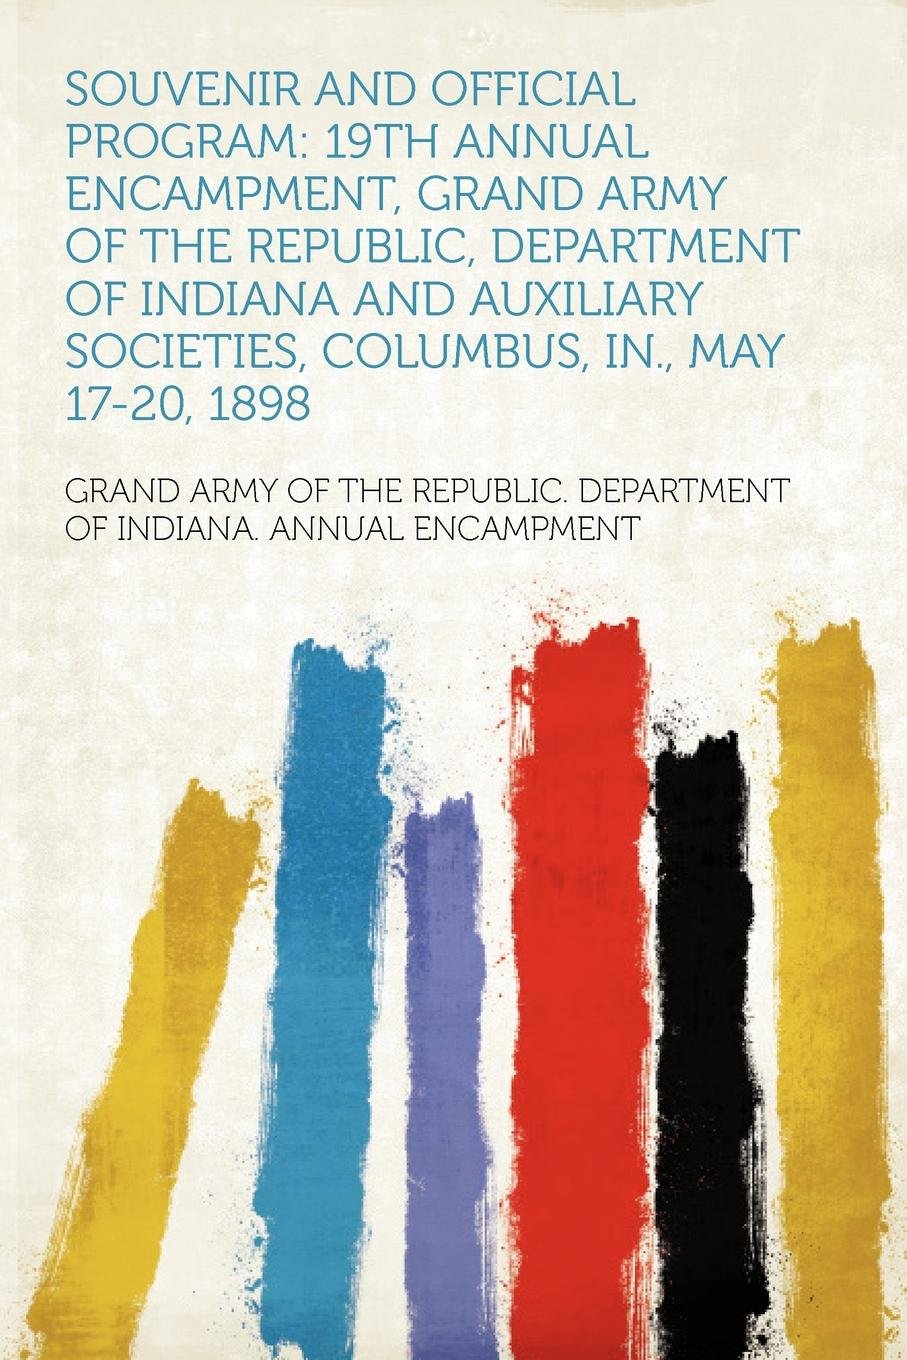 Souvenir and Official Program: 19th Annual Encampment, Grand Army of the Republic, Department of Indiana and Auxiliary Societies, Columbus, In., May 17-20, 1898 ebook